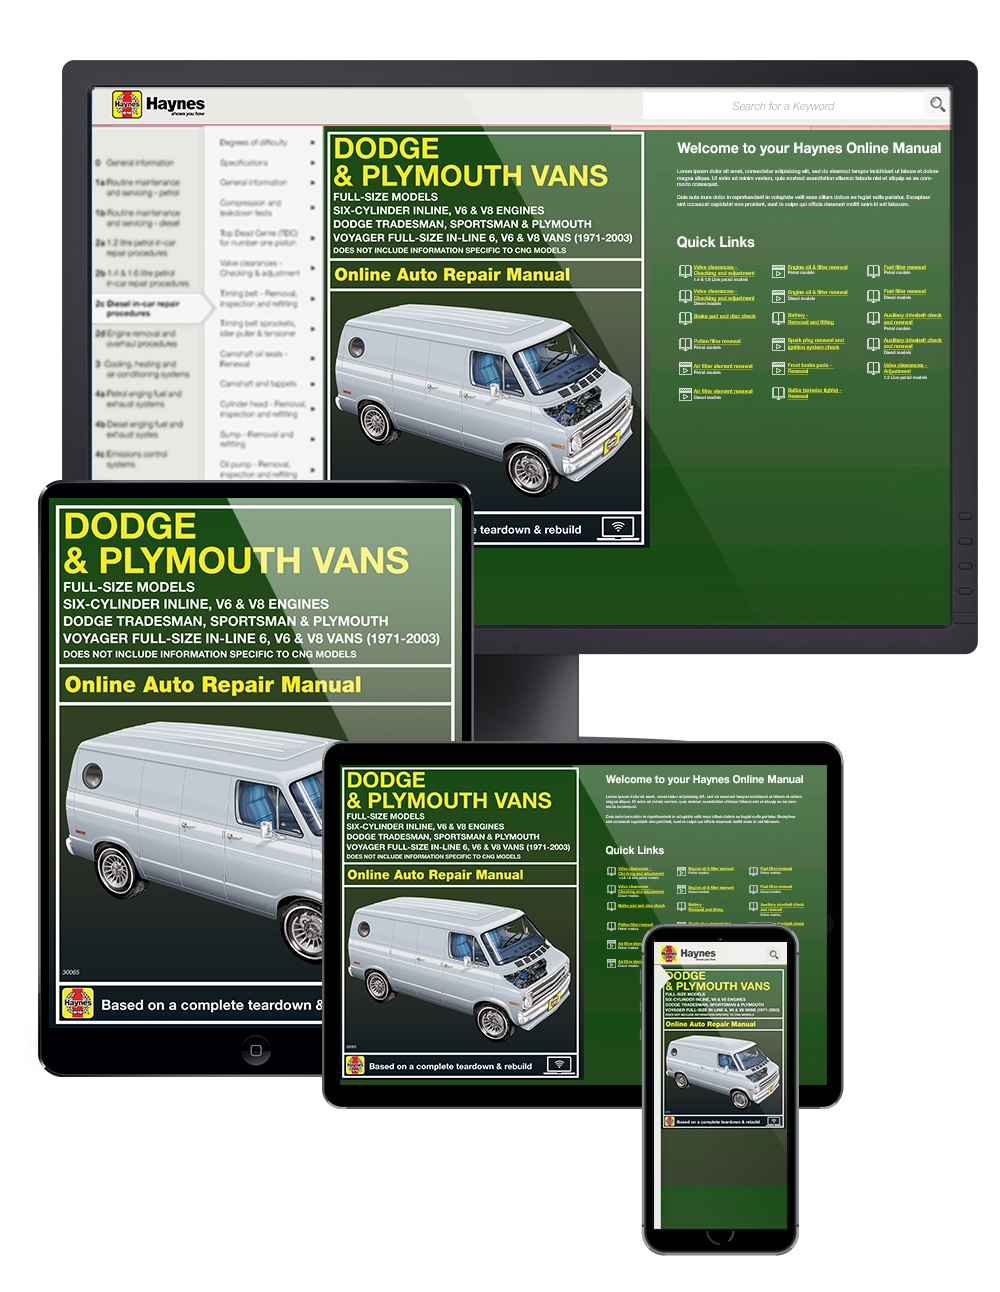 Manual cover for Dodge and Plymouth Full-size Vans covering Tradesman, Sportsman and Plymouth Voyager Vans with In-line 6, V6 and V8 engines (71-03) Haynes Online Manual